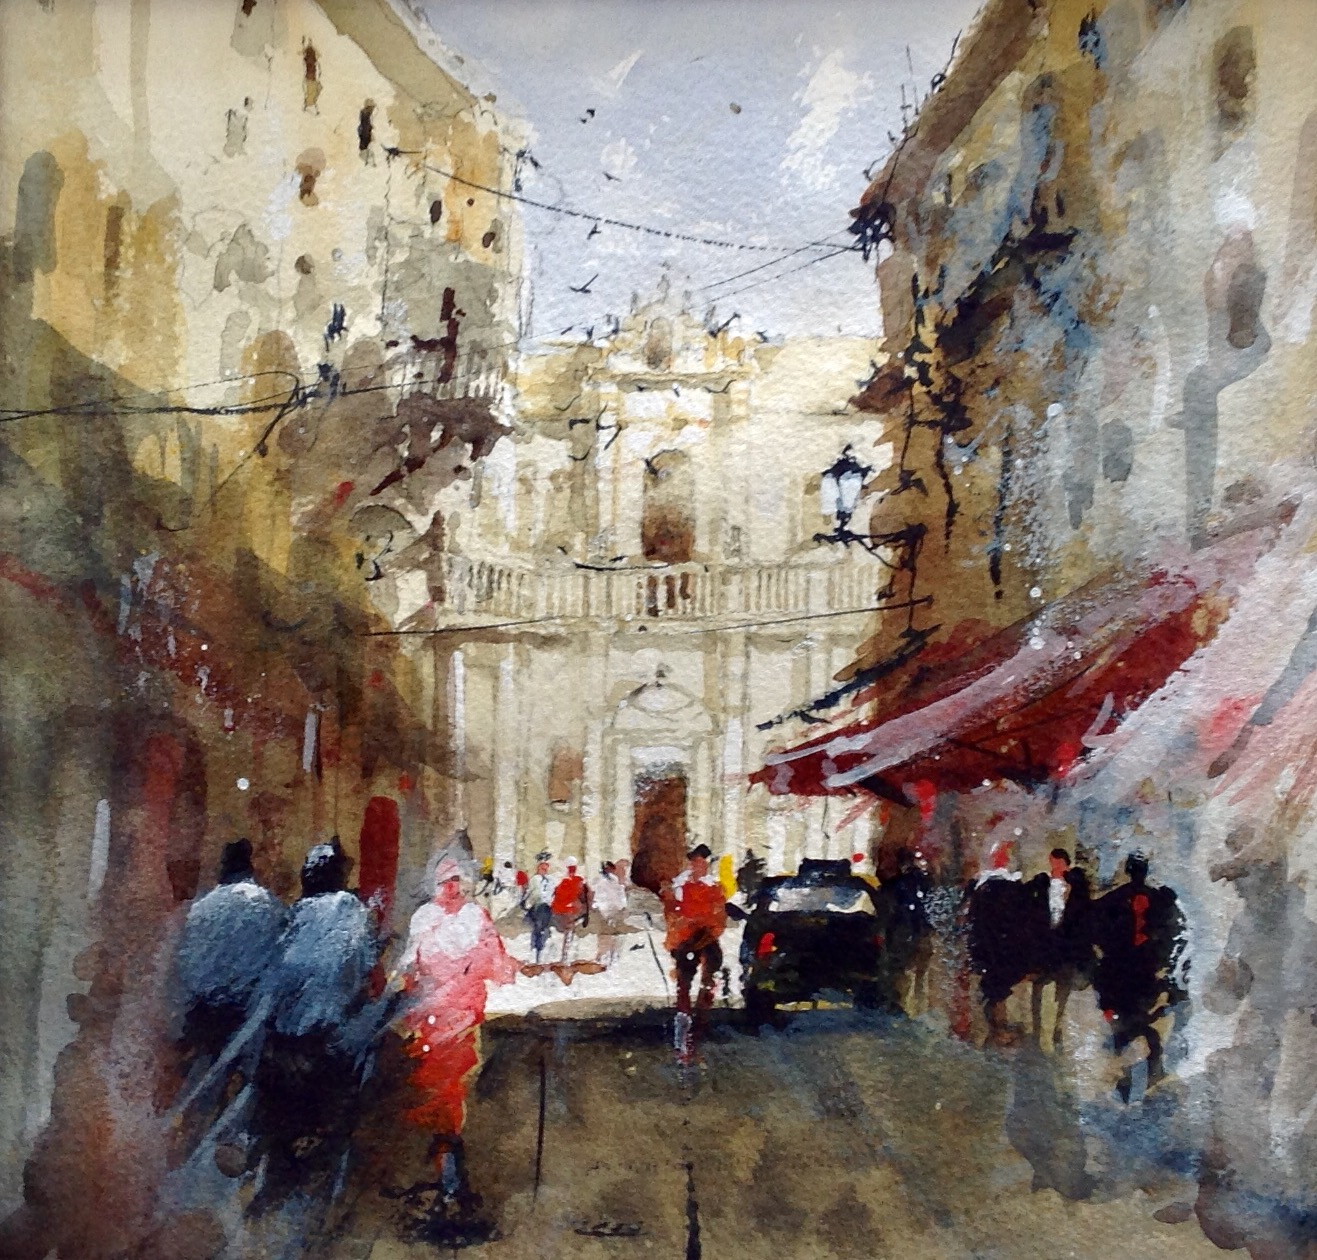 David Norman The Old Quarter, Lecce Cathedral, Italy